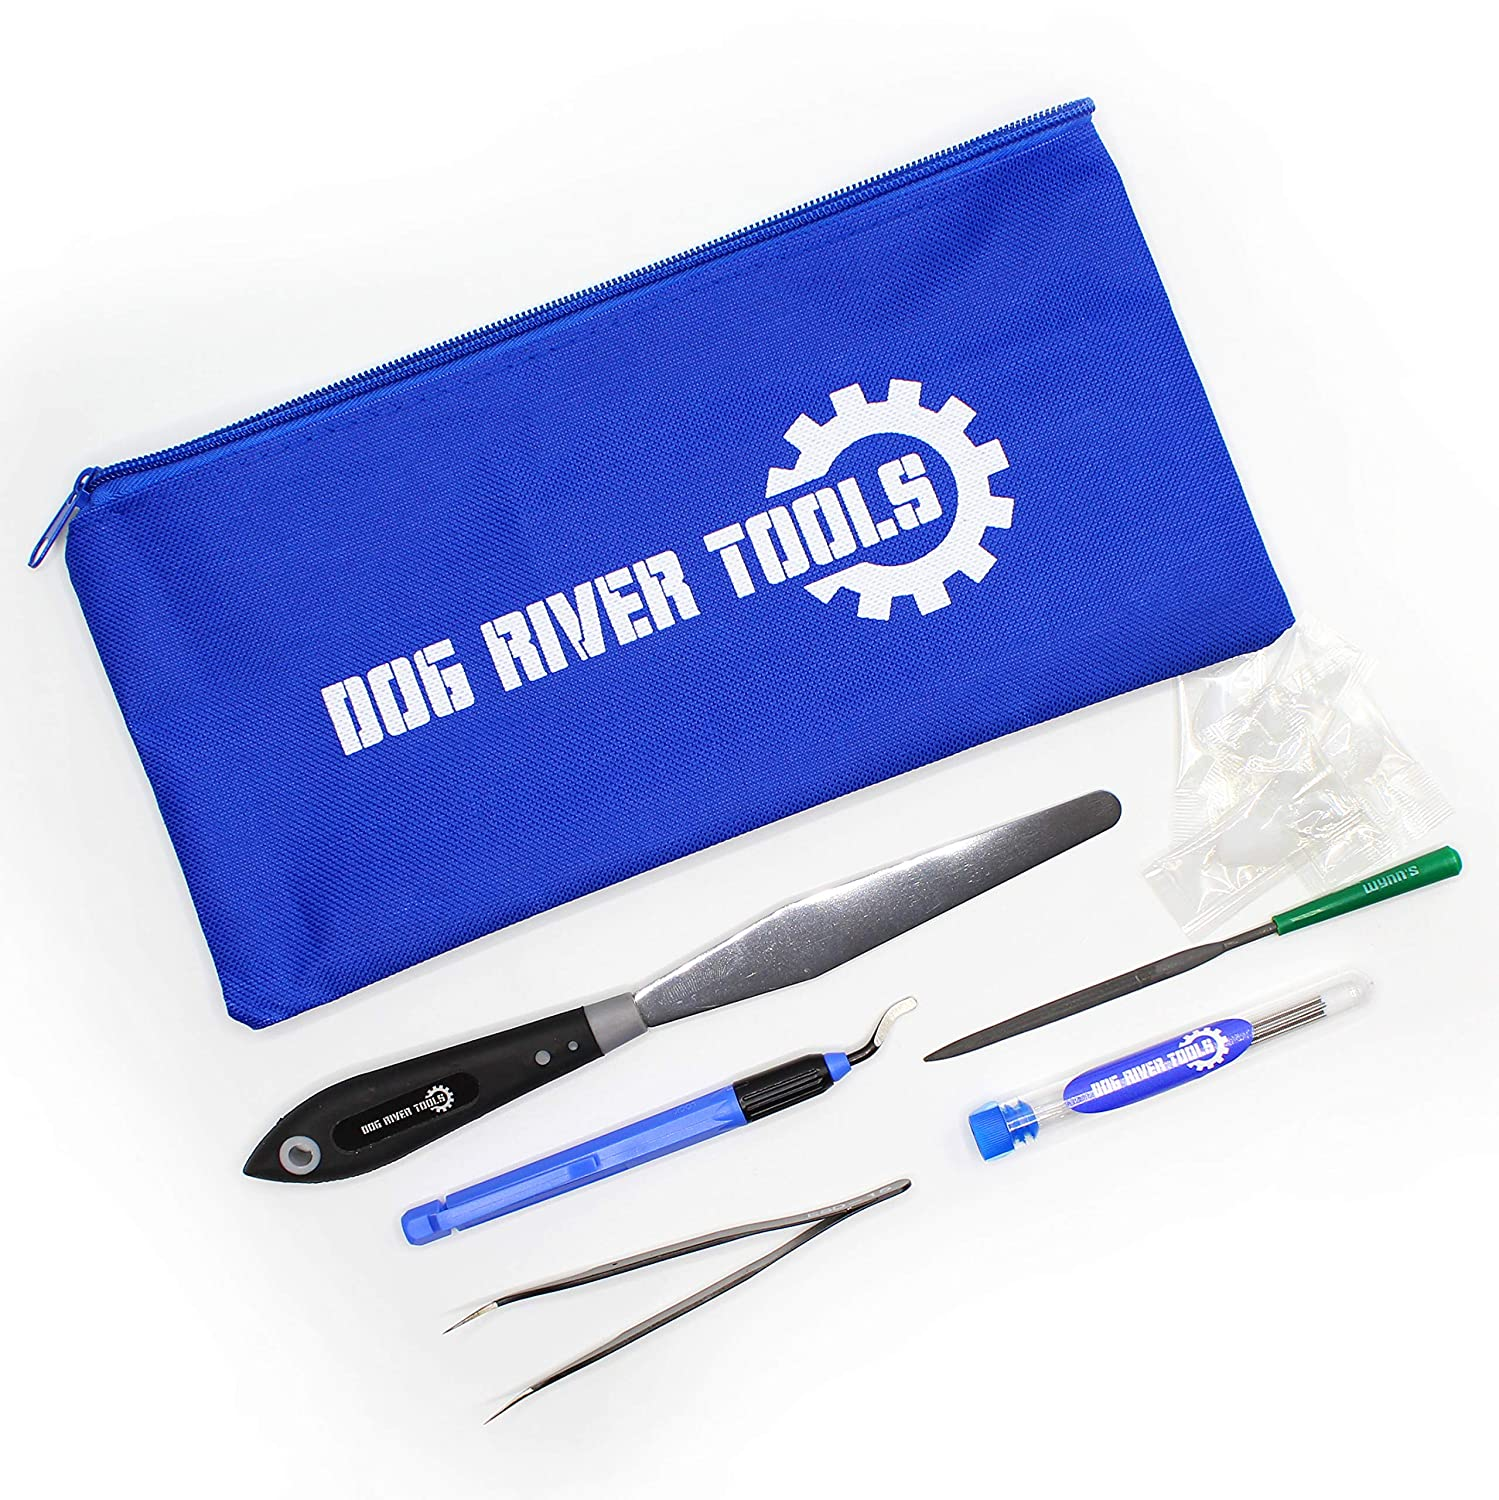 3D Printing Tool Kit - Print Removal, Nozzle Cleaning, Clean Up, Finishing and Maintenance